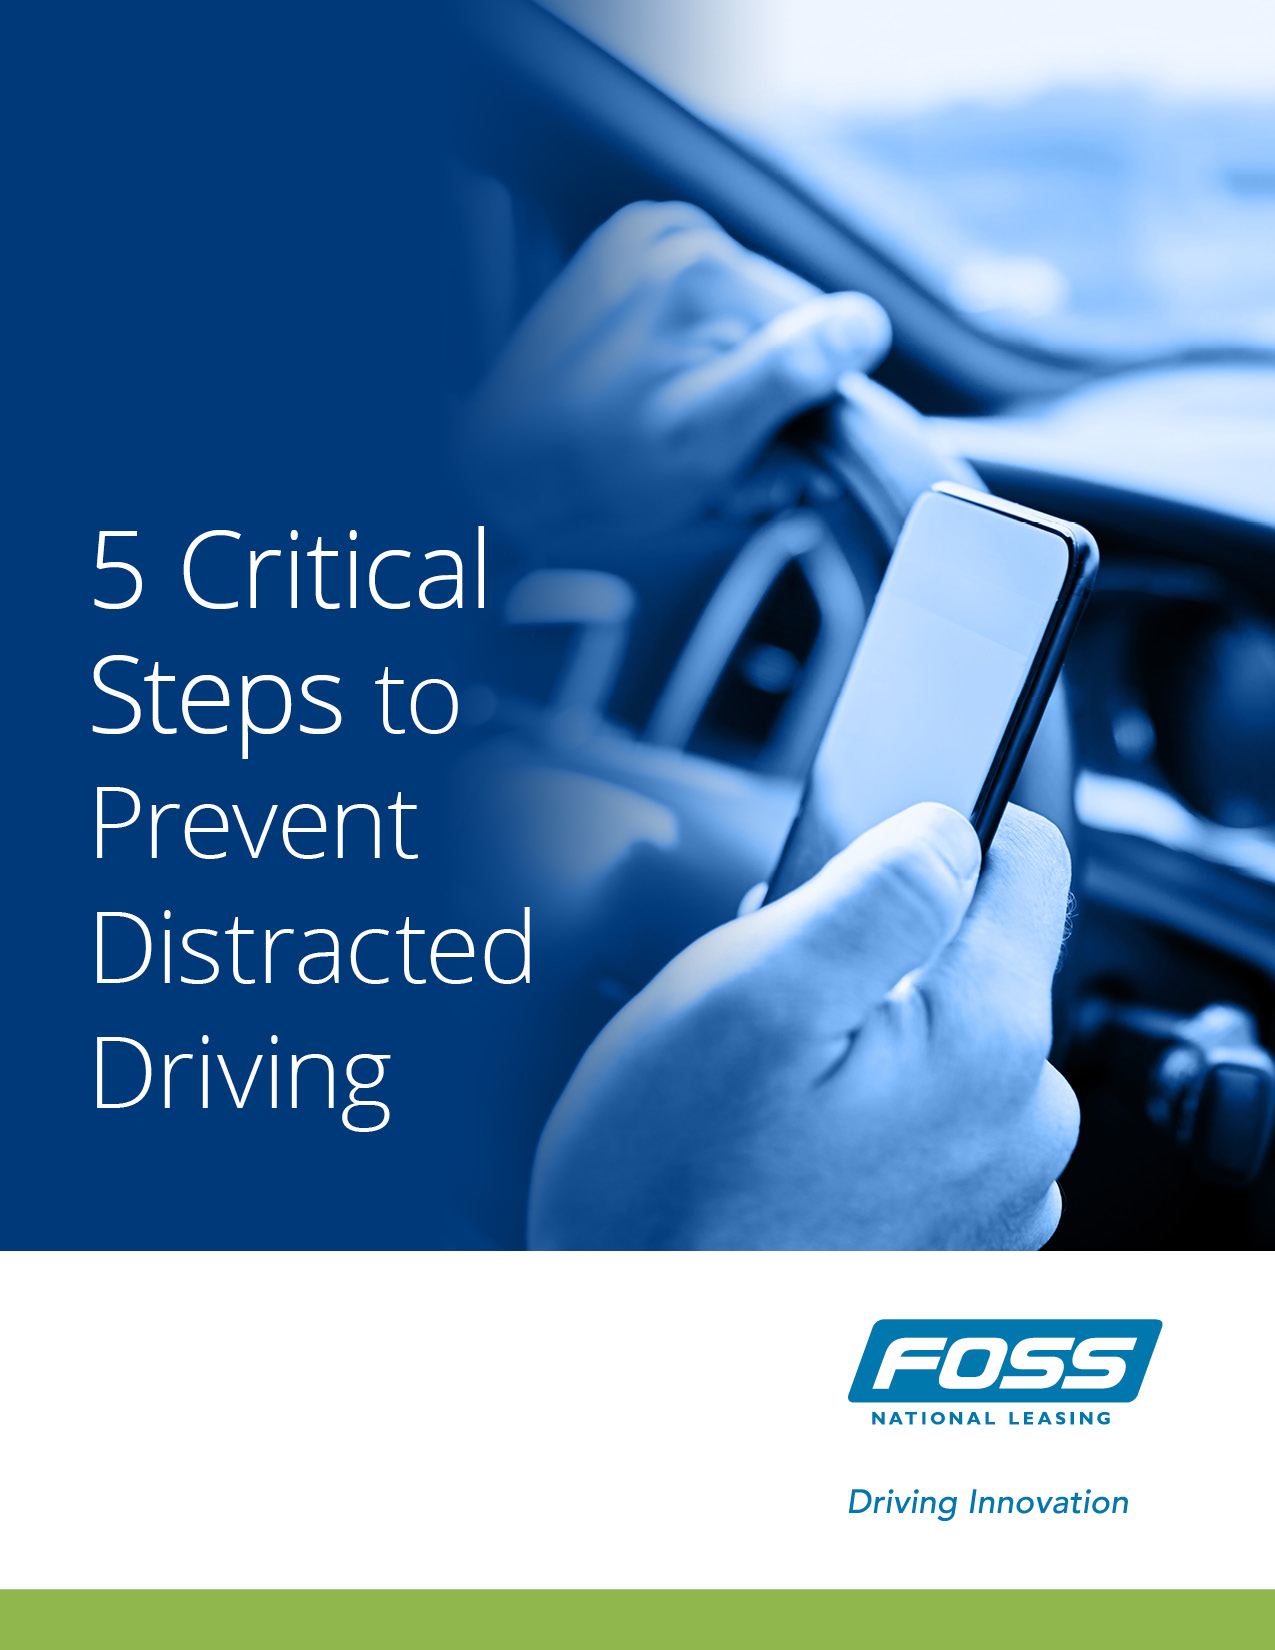 Foss-National-Leasing-Fleet-Policy-for-Distracted-Driving-Thumbnail